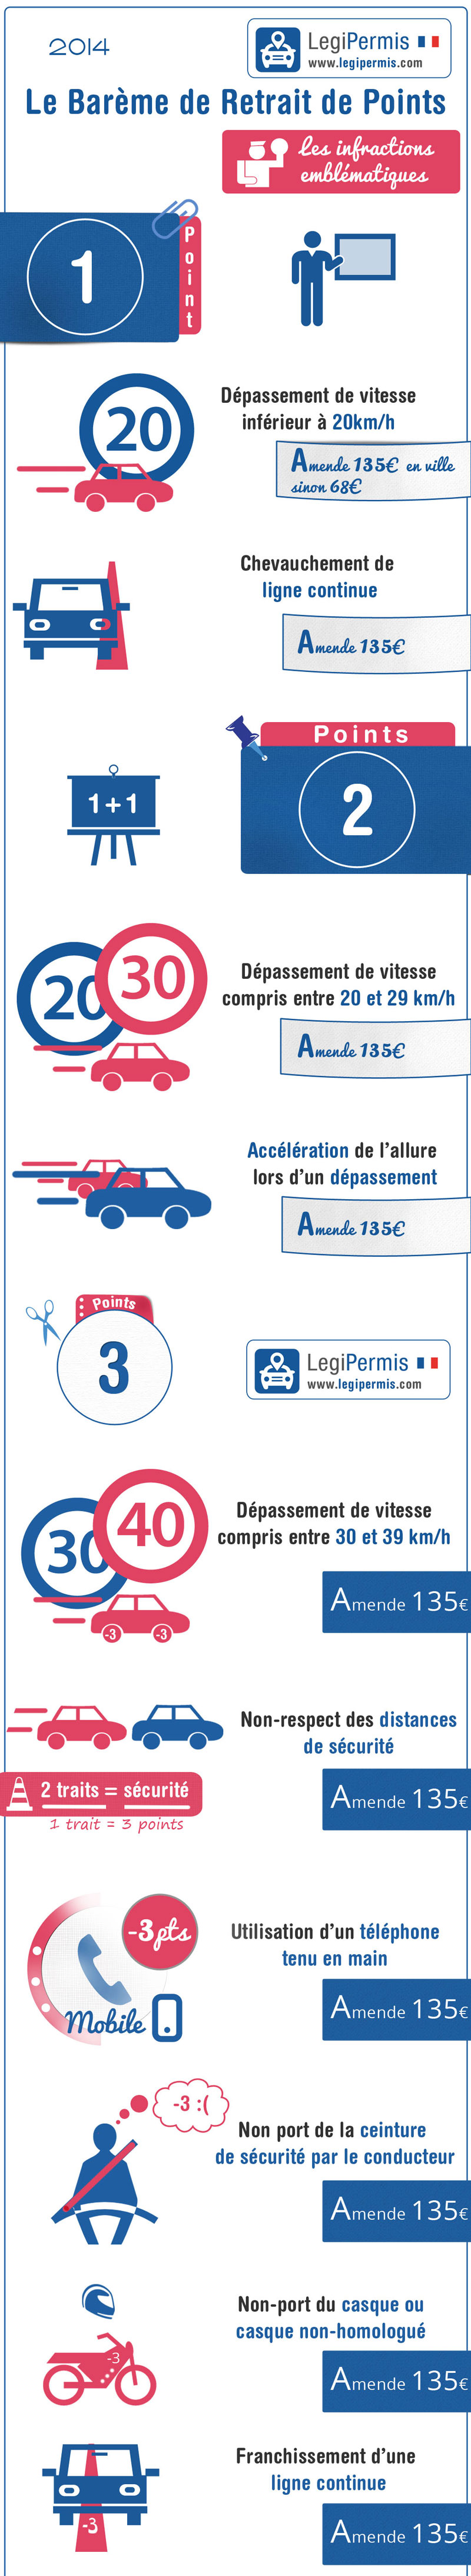 infographie perte de points infractions 1 à 3 points